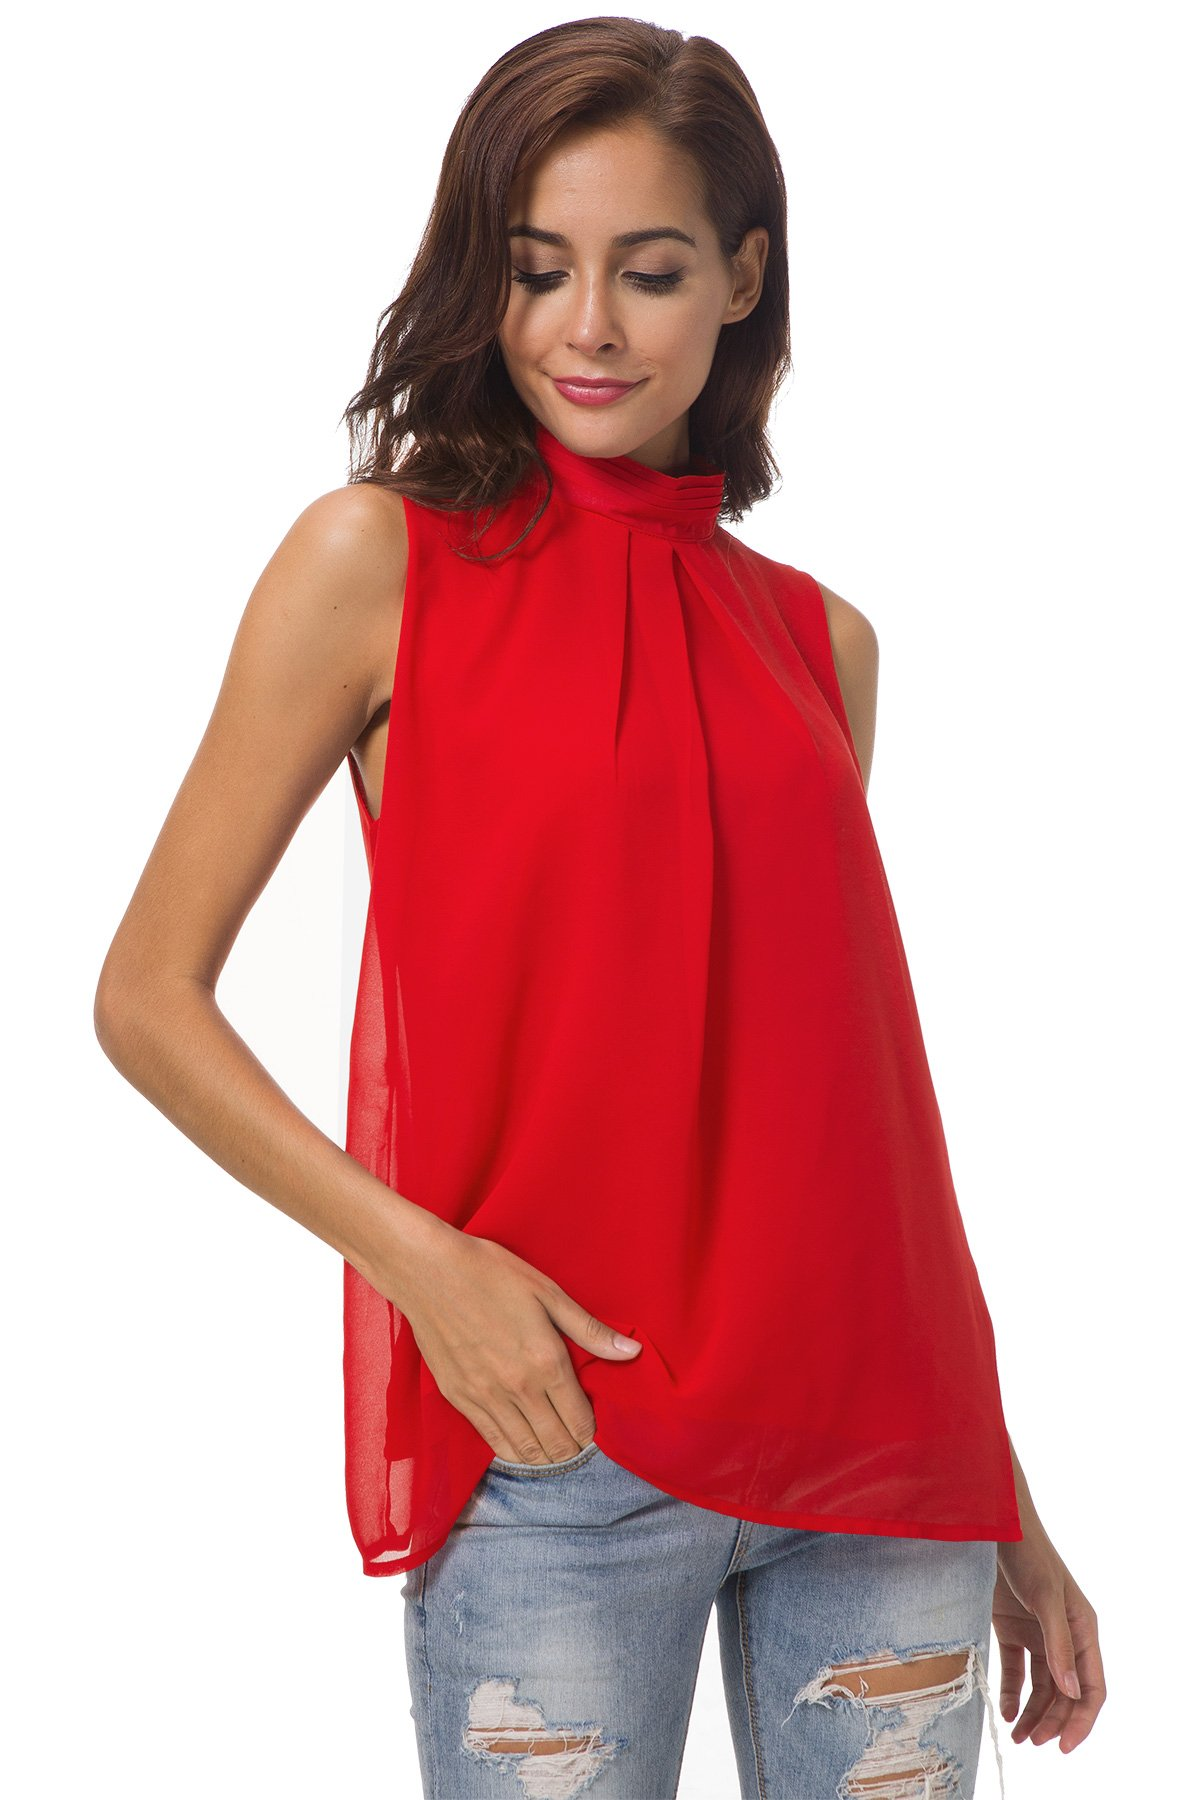 SRYSHKR Summer Chiffon Sleeveless Shirt Top Blouse Tank Camis Women Casual Double Layer Pleated Female (XL, Red)